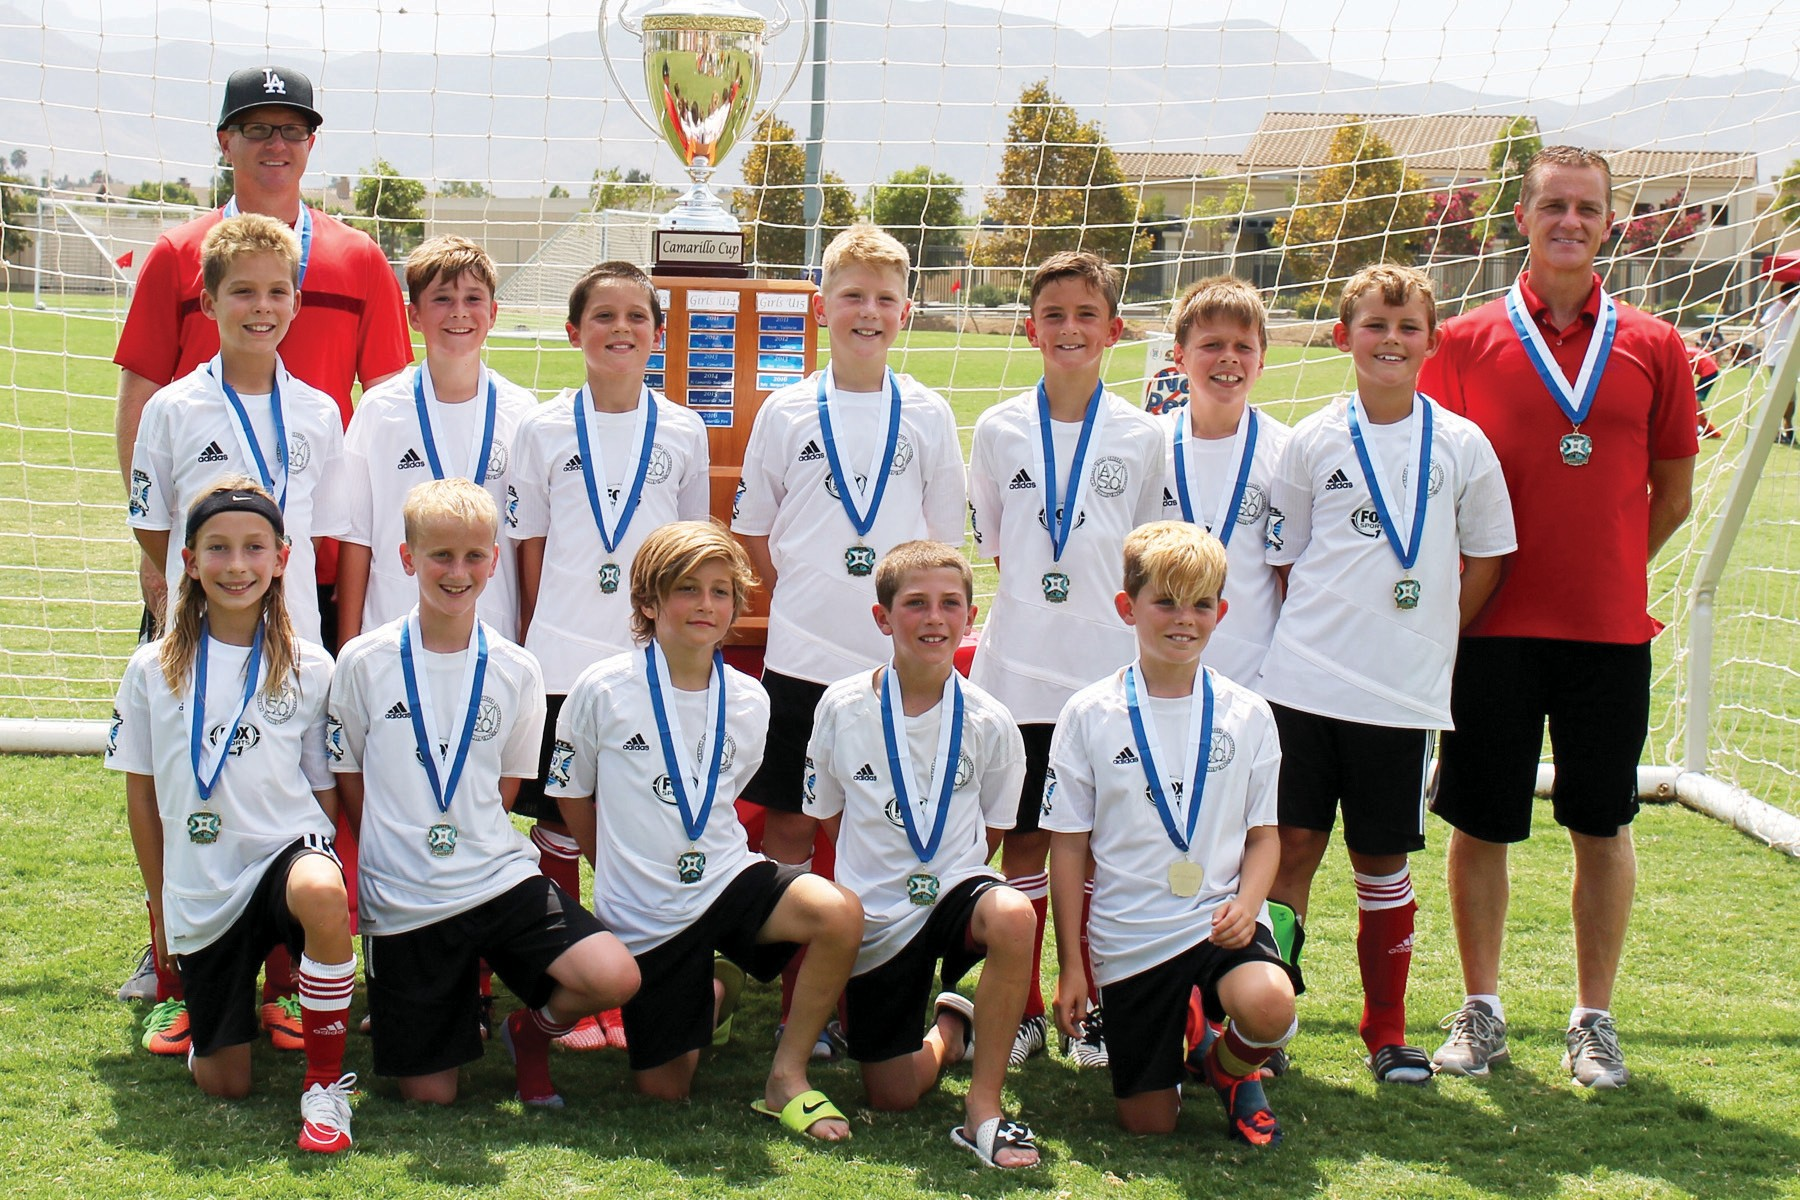 SOCK IT TO 'EM— Left, the Red Devils boys' AYSO Extra Team are the 2017 Camarillo Cup champions for the second year in a row. Back row, from left: Coach Brian Oliver, Cooper McAllister, Will Fox, Brady Dieffenbach, Braden Oliver, Jesse Leko, Josh Mensching, Garrett Andrews and coach Alan Howie. Front row: Cayde Rooke, Connor Howie, Shai Stabinsky, Caden Graves and Alex McAllister.